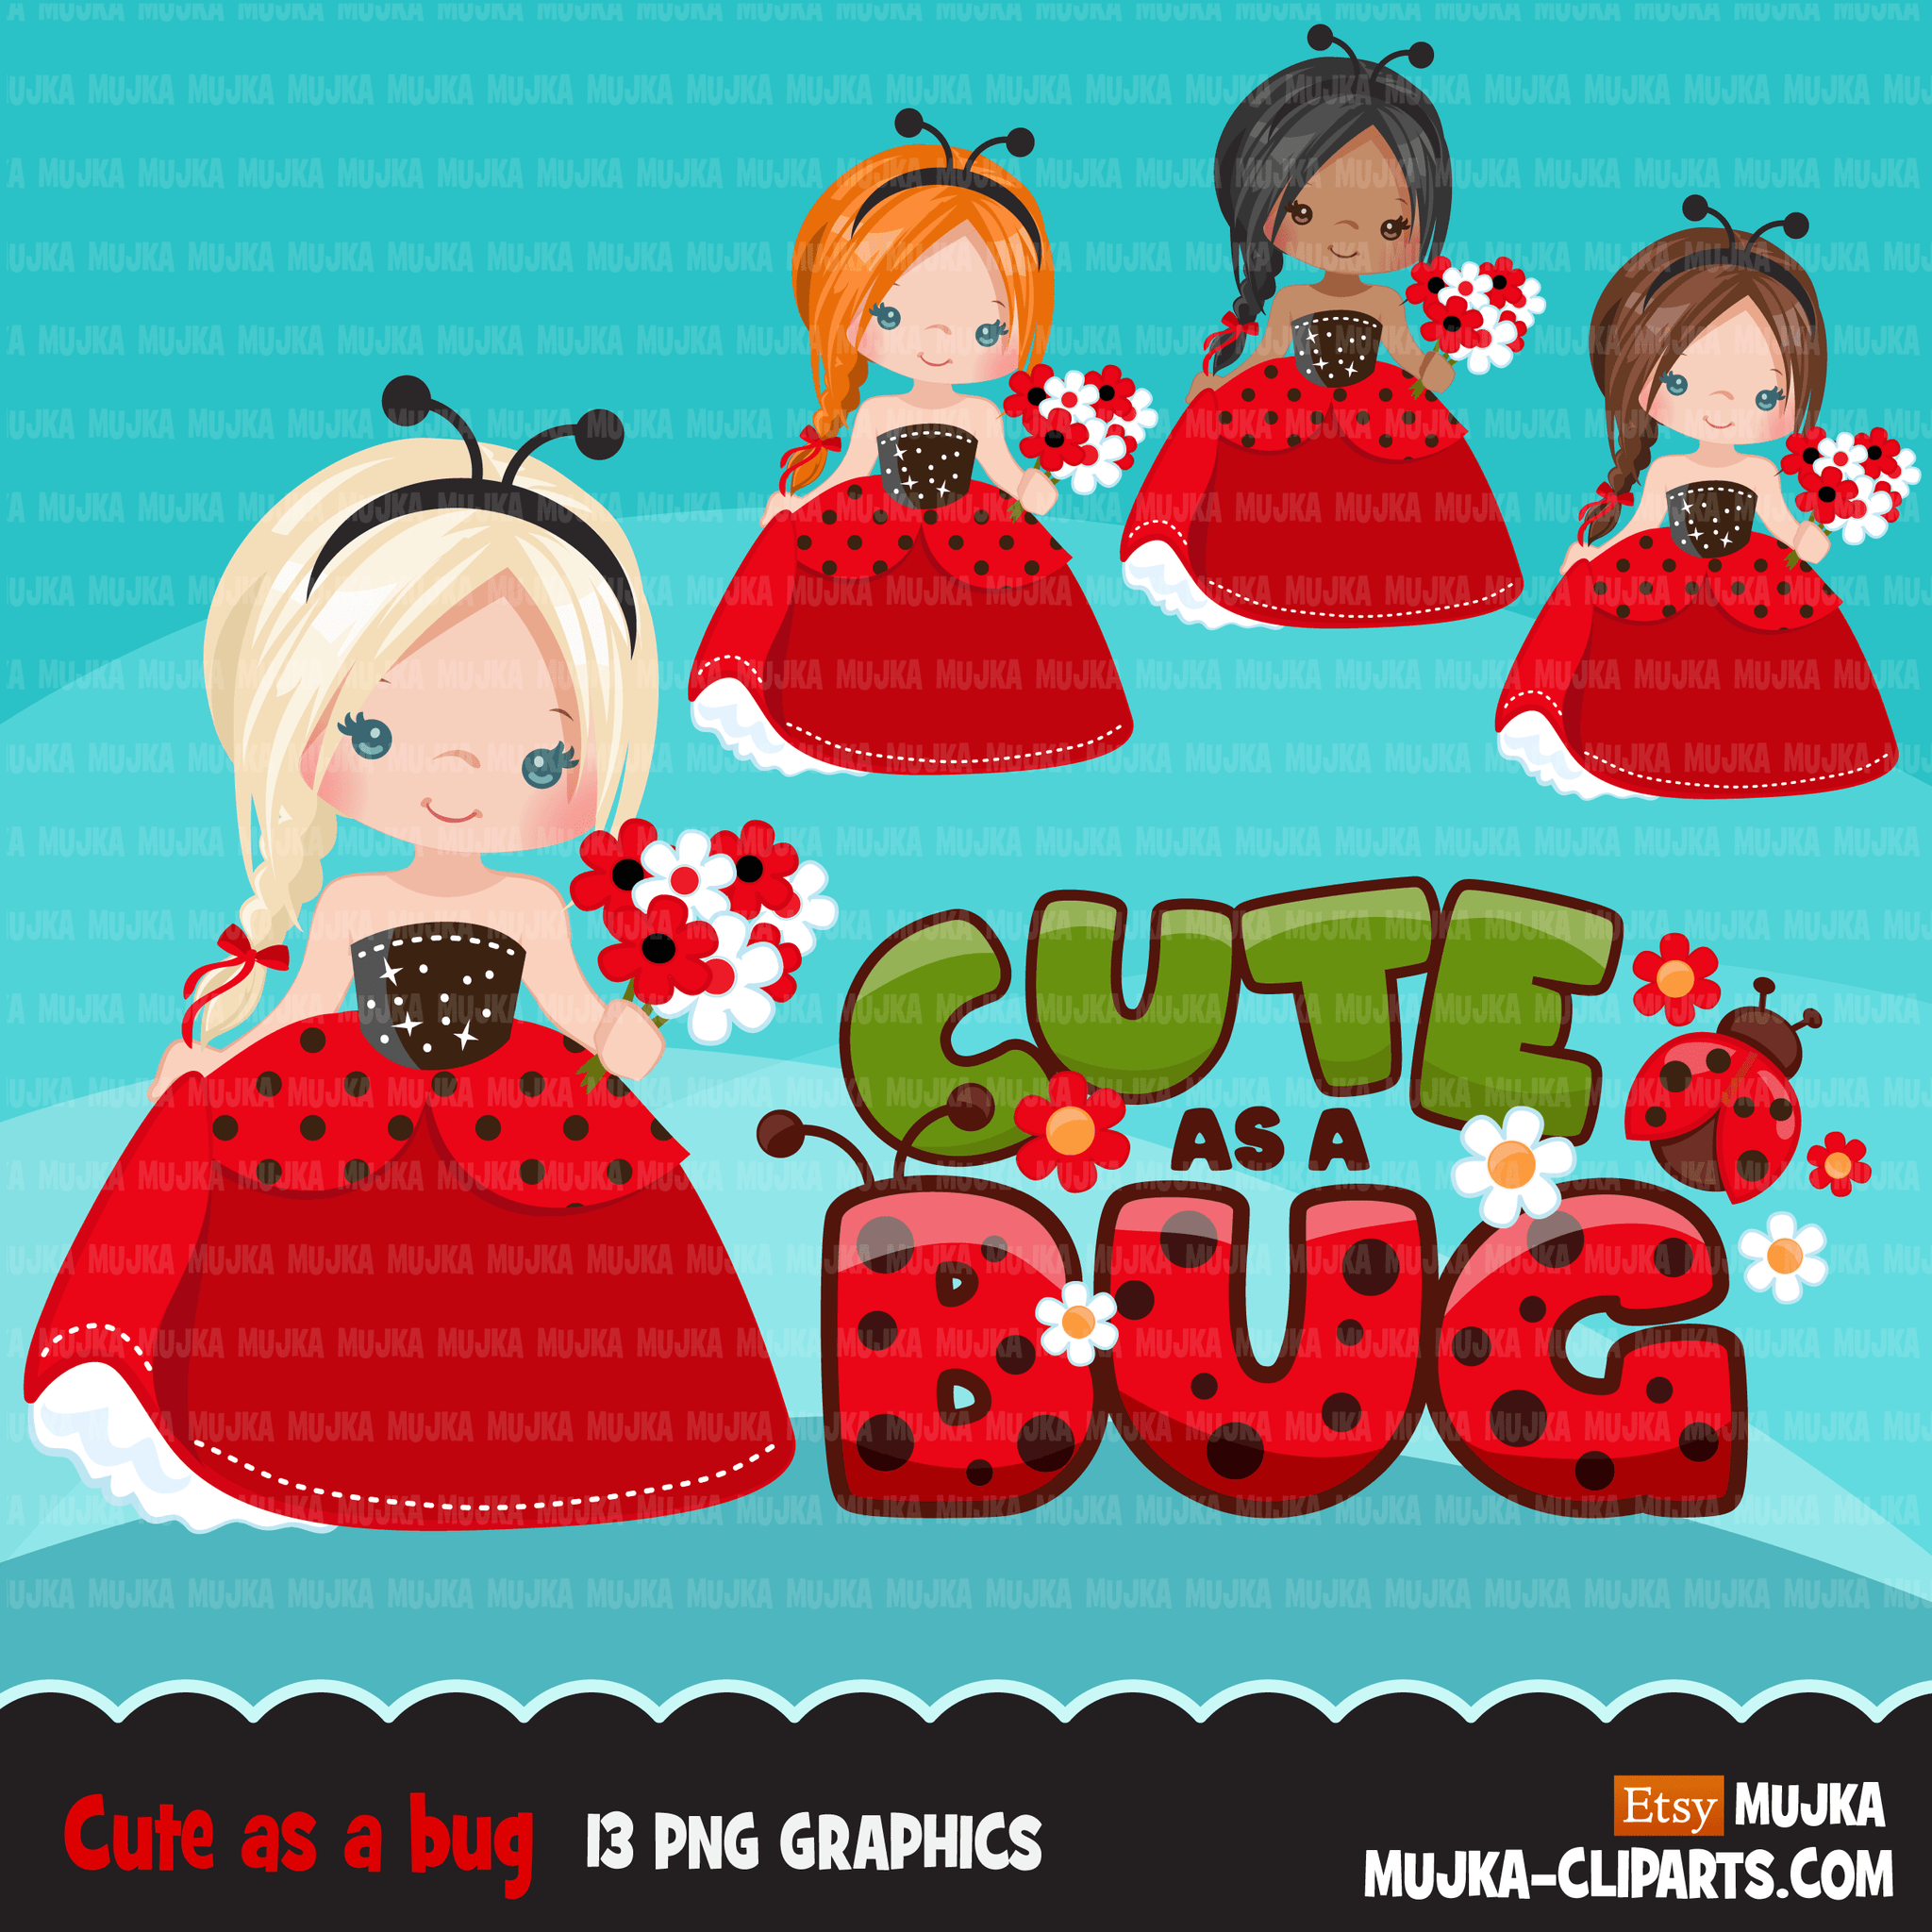 Ladybug Clipart, cute Princess, fairy tale graphics, Easter girls with flowers, cute as a bug, commercial use clip art